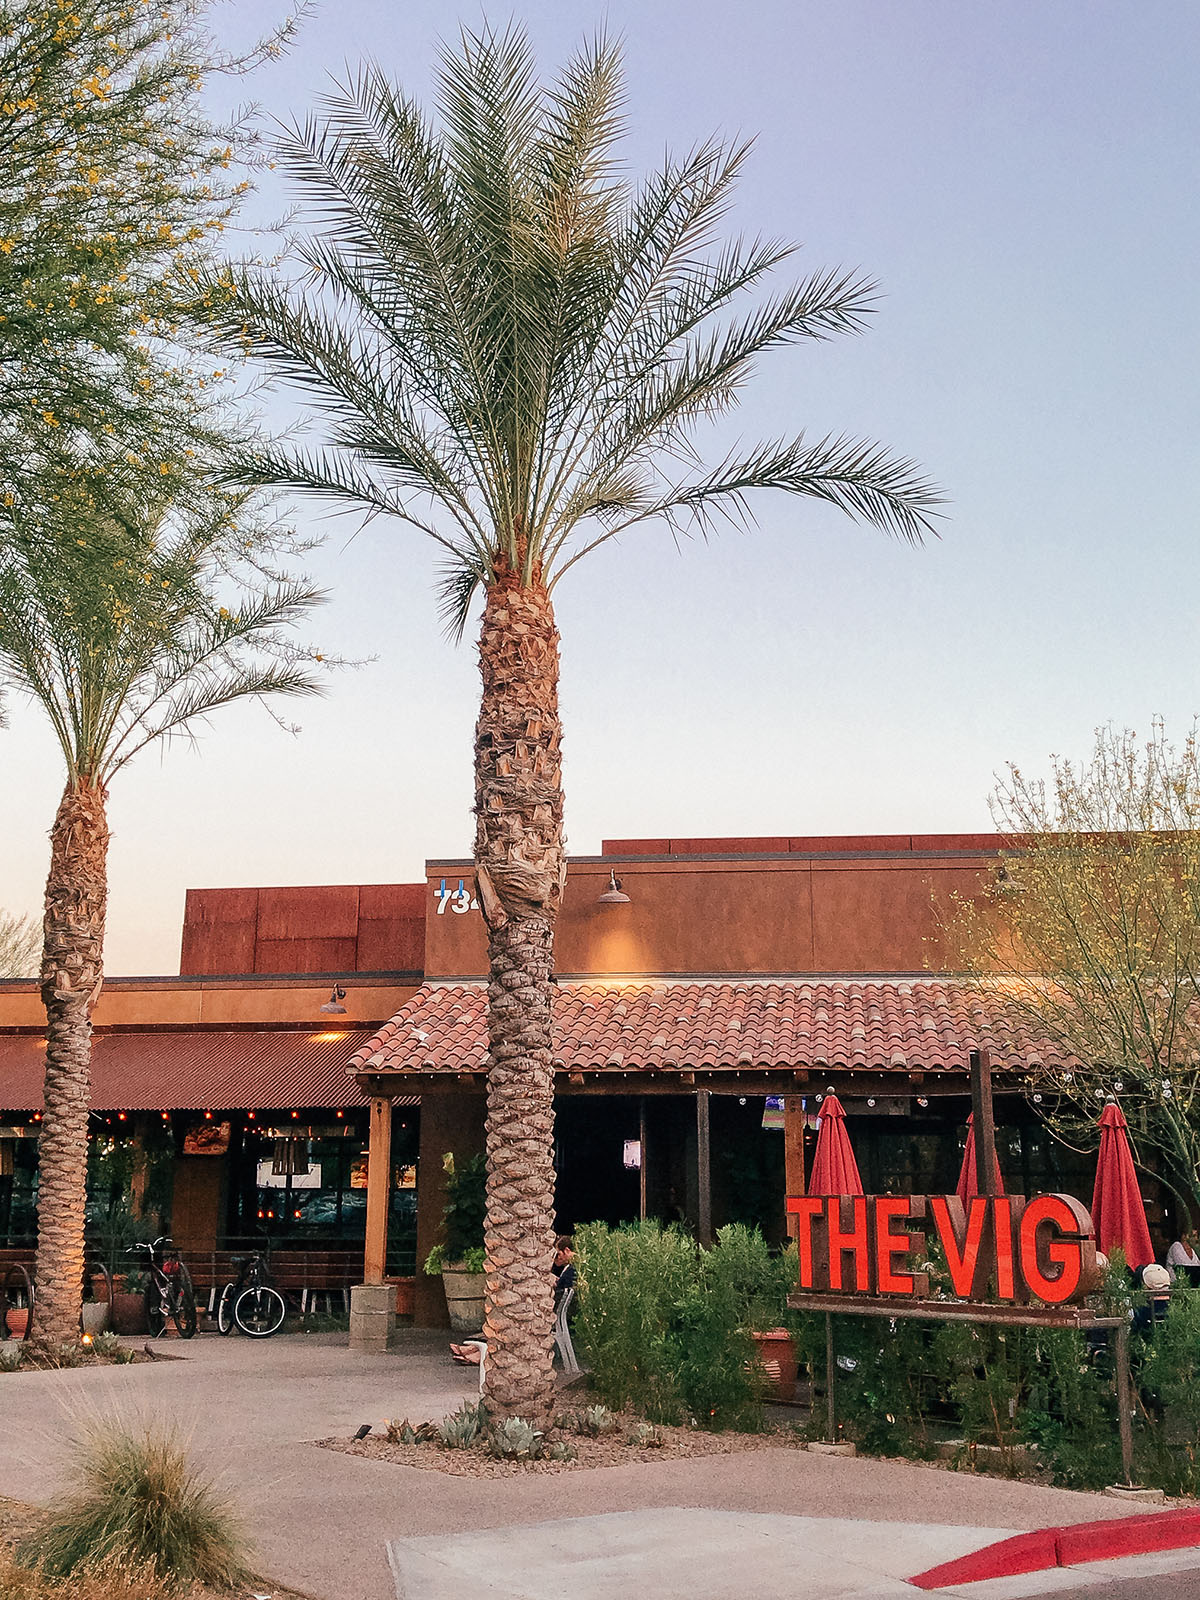 First Timers Guide to Scottsdale | Scottsdale, Arizona Travel Guide